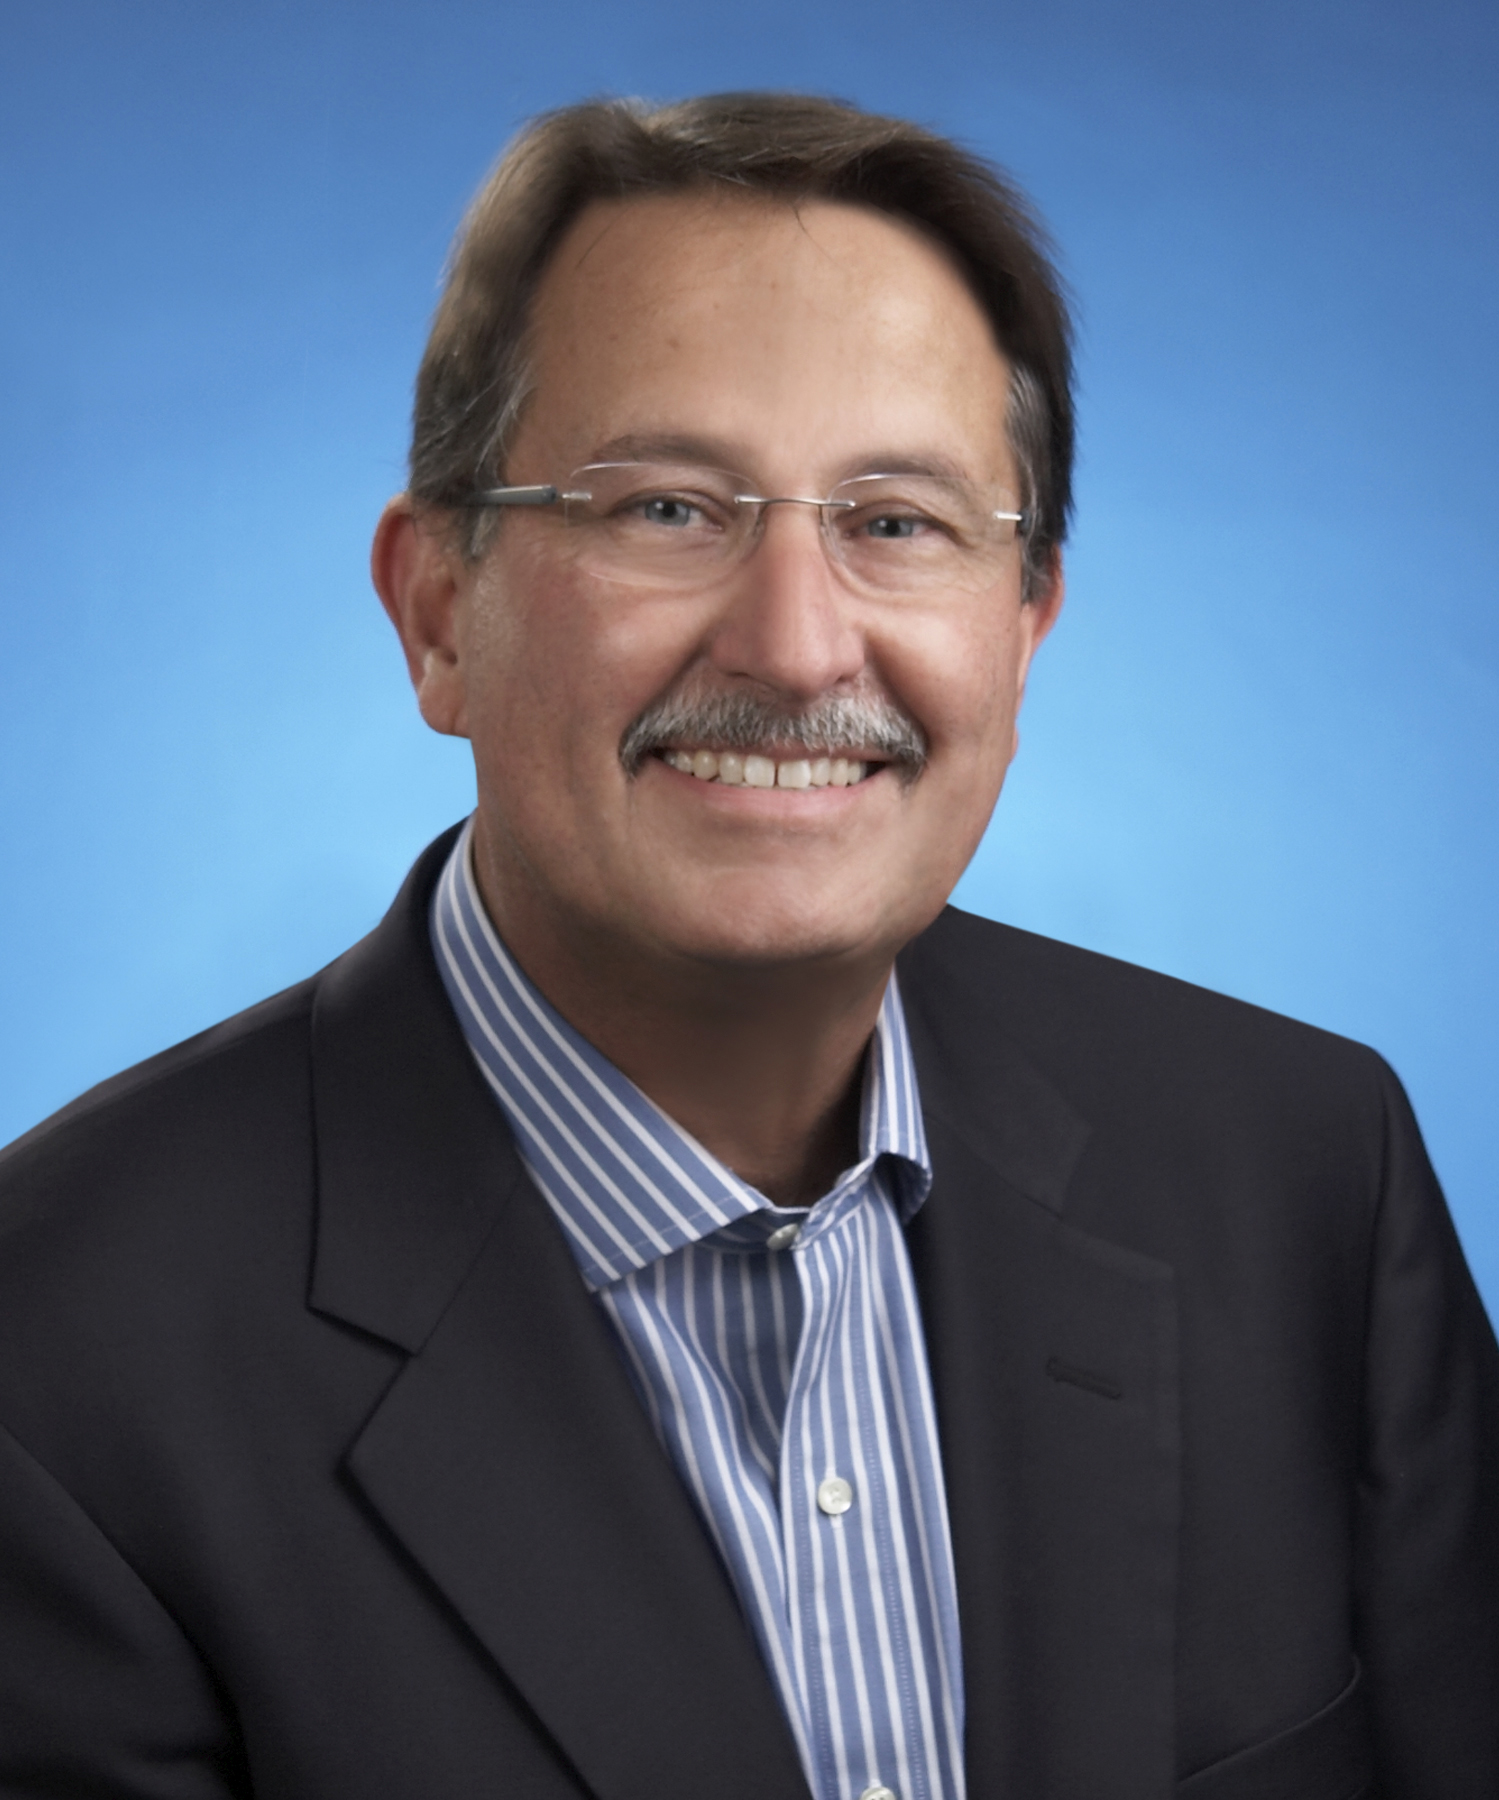 Ken Kerr, President and CEO